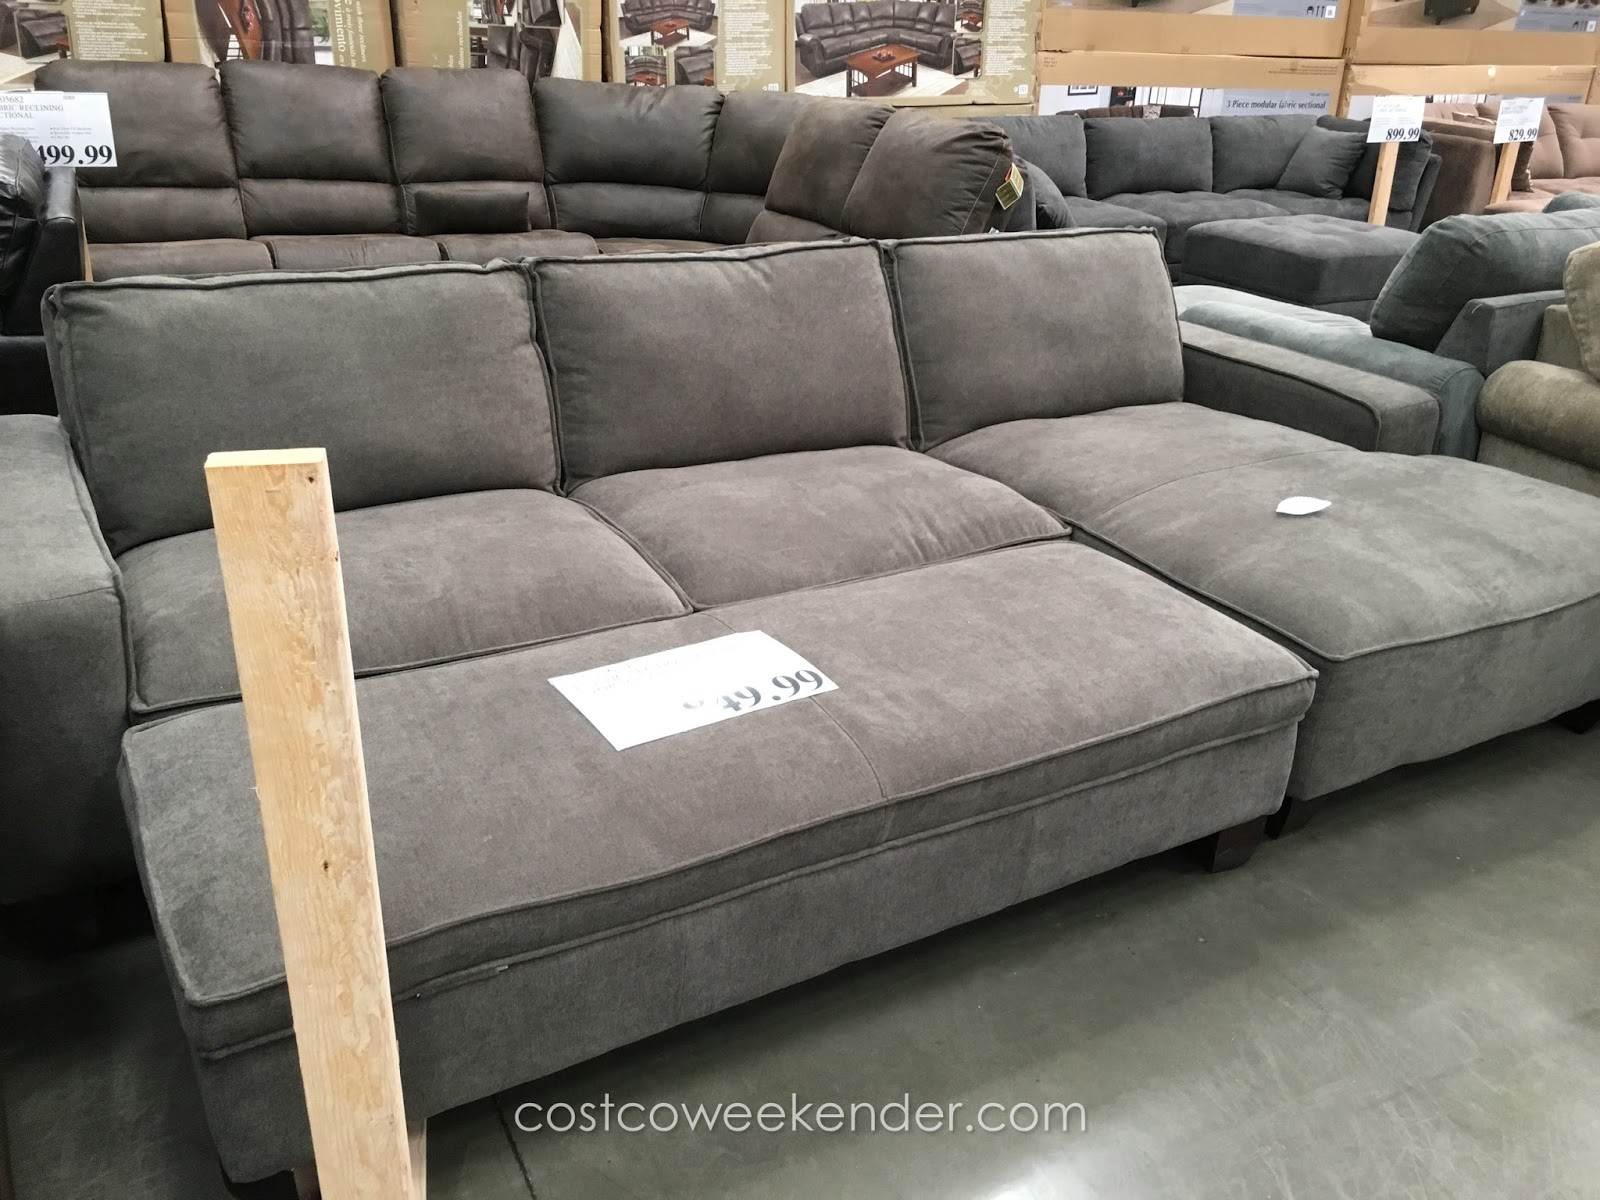 Costco Sleeper sofa Amazing Sectional sofa Design Costco Sectional sofas Best Ever Leather Construction